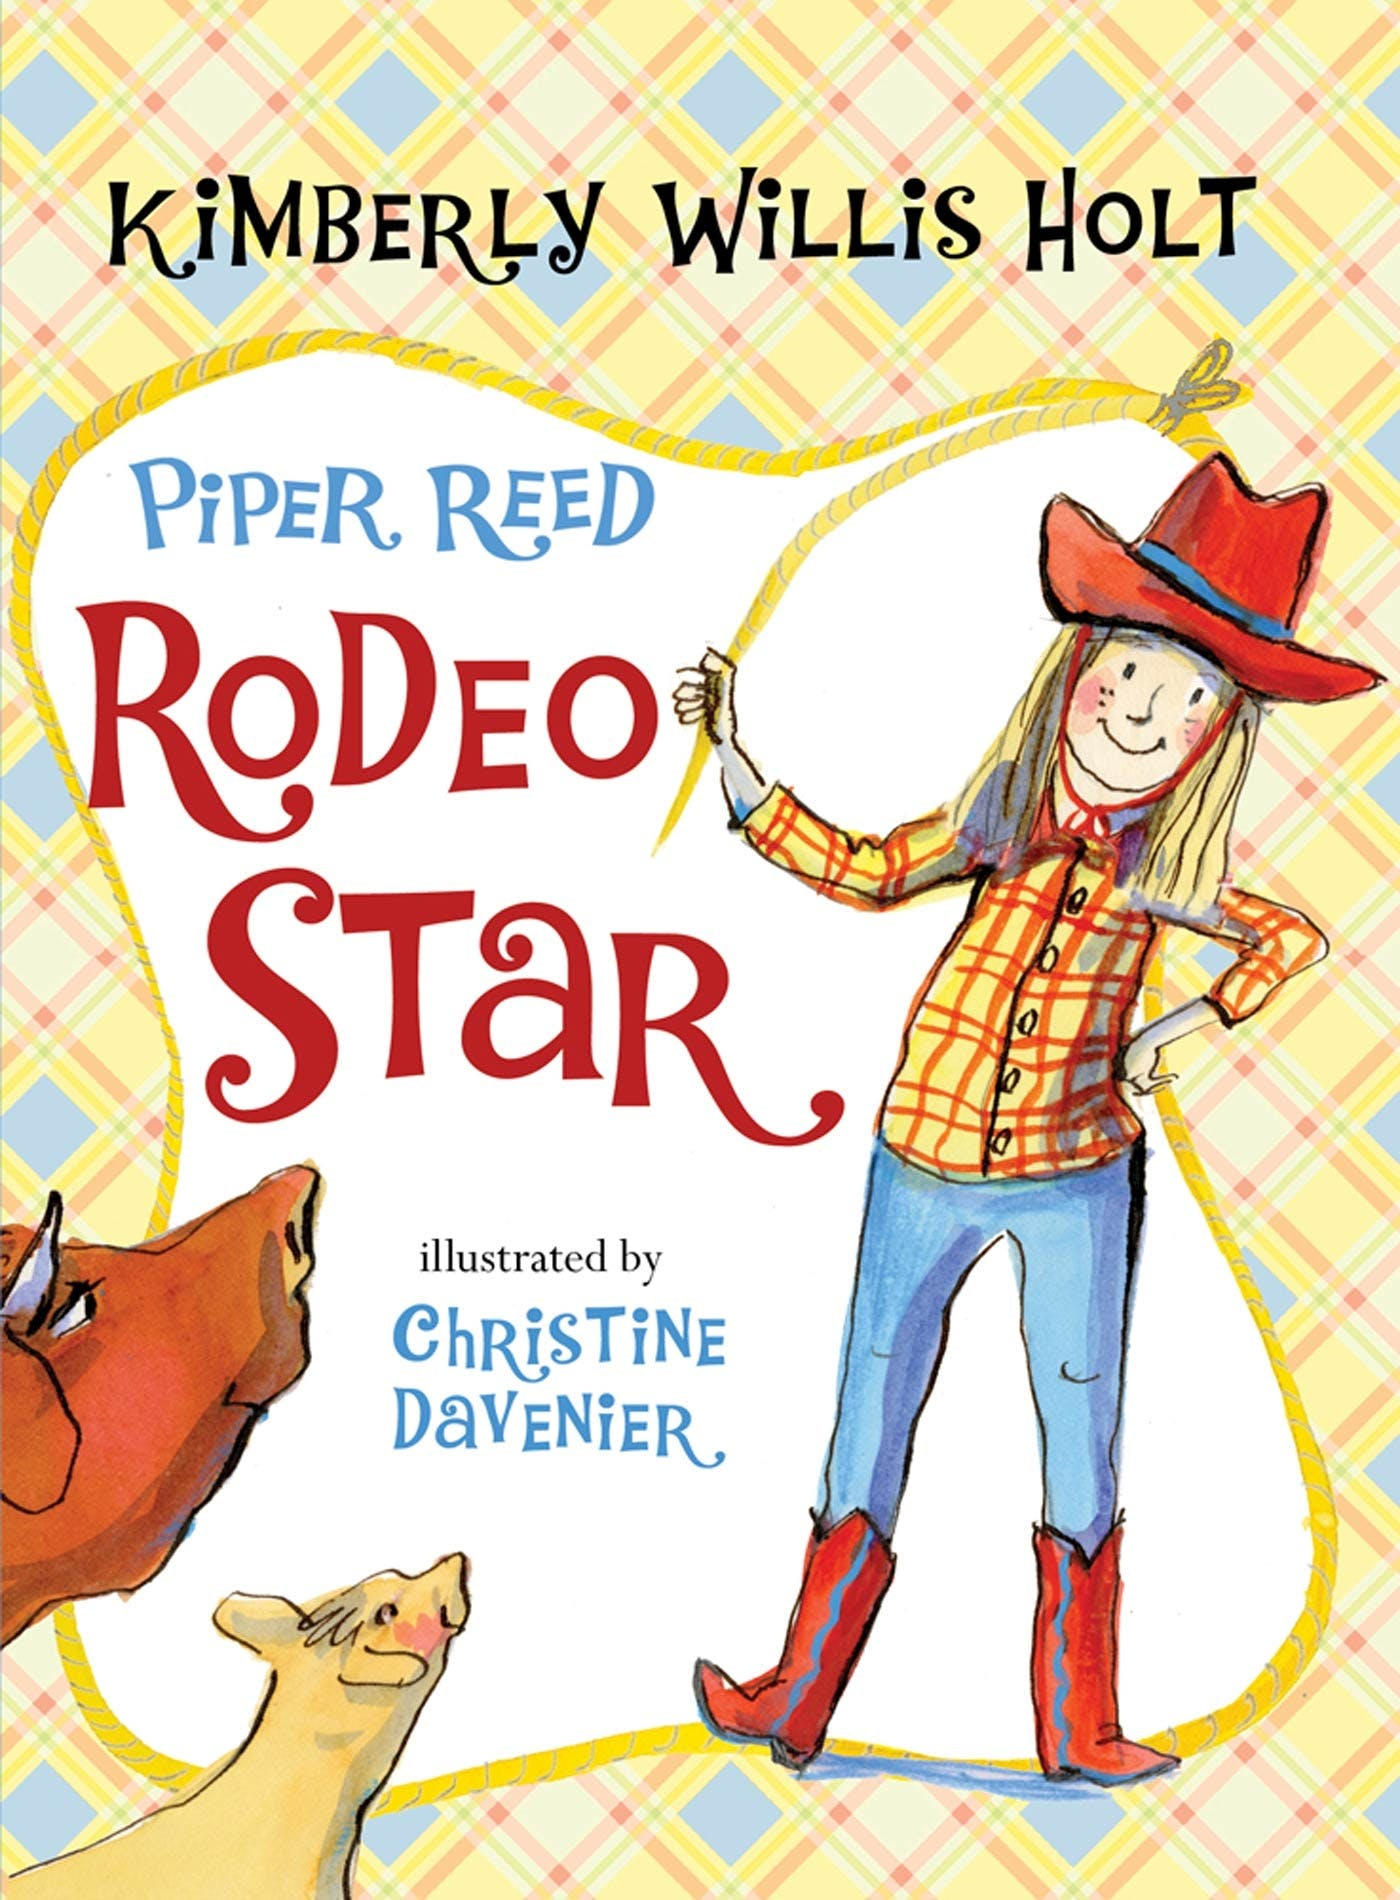 Image of Piper Reed, Rodeo Star